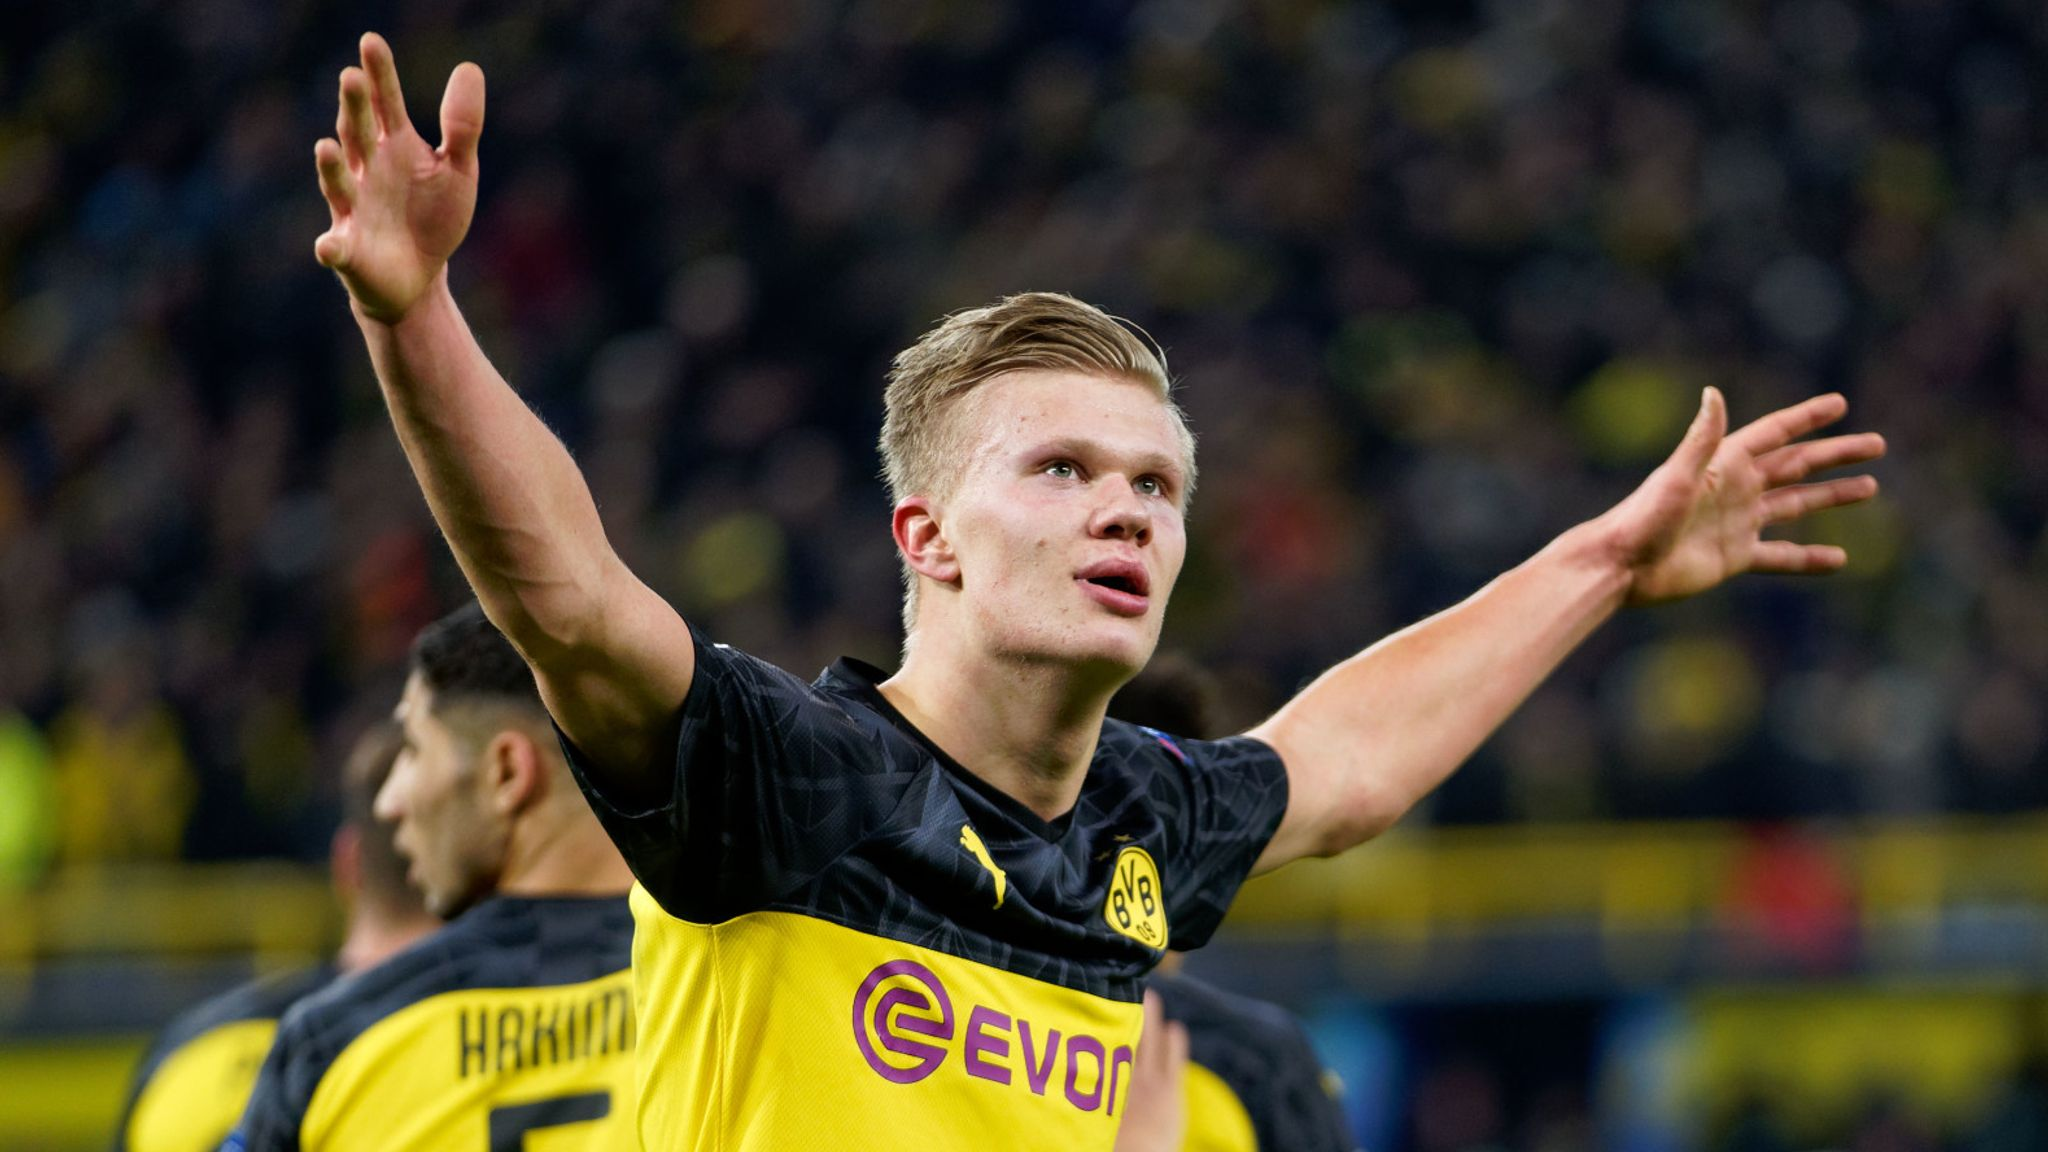 Erling Haaland The Numbers Behind His Incredible Start At Borussia Dortmund Football News Sky Sports